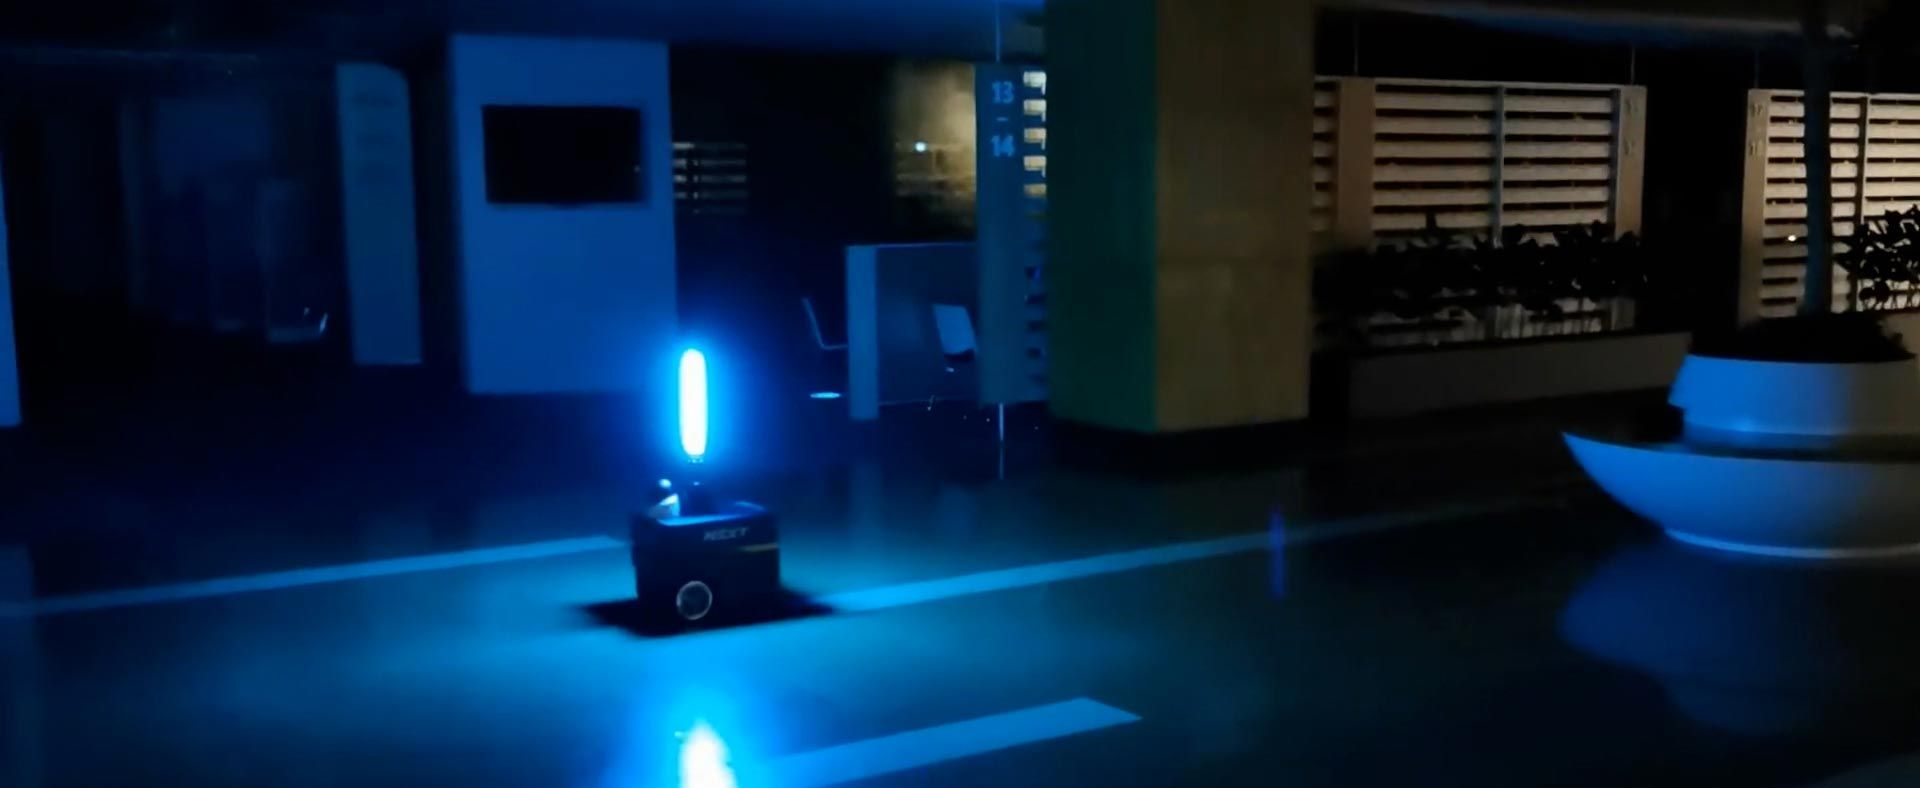 An autonomous robot inside a commercial space with a mounted UV light disinfects building interiors.